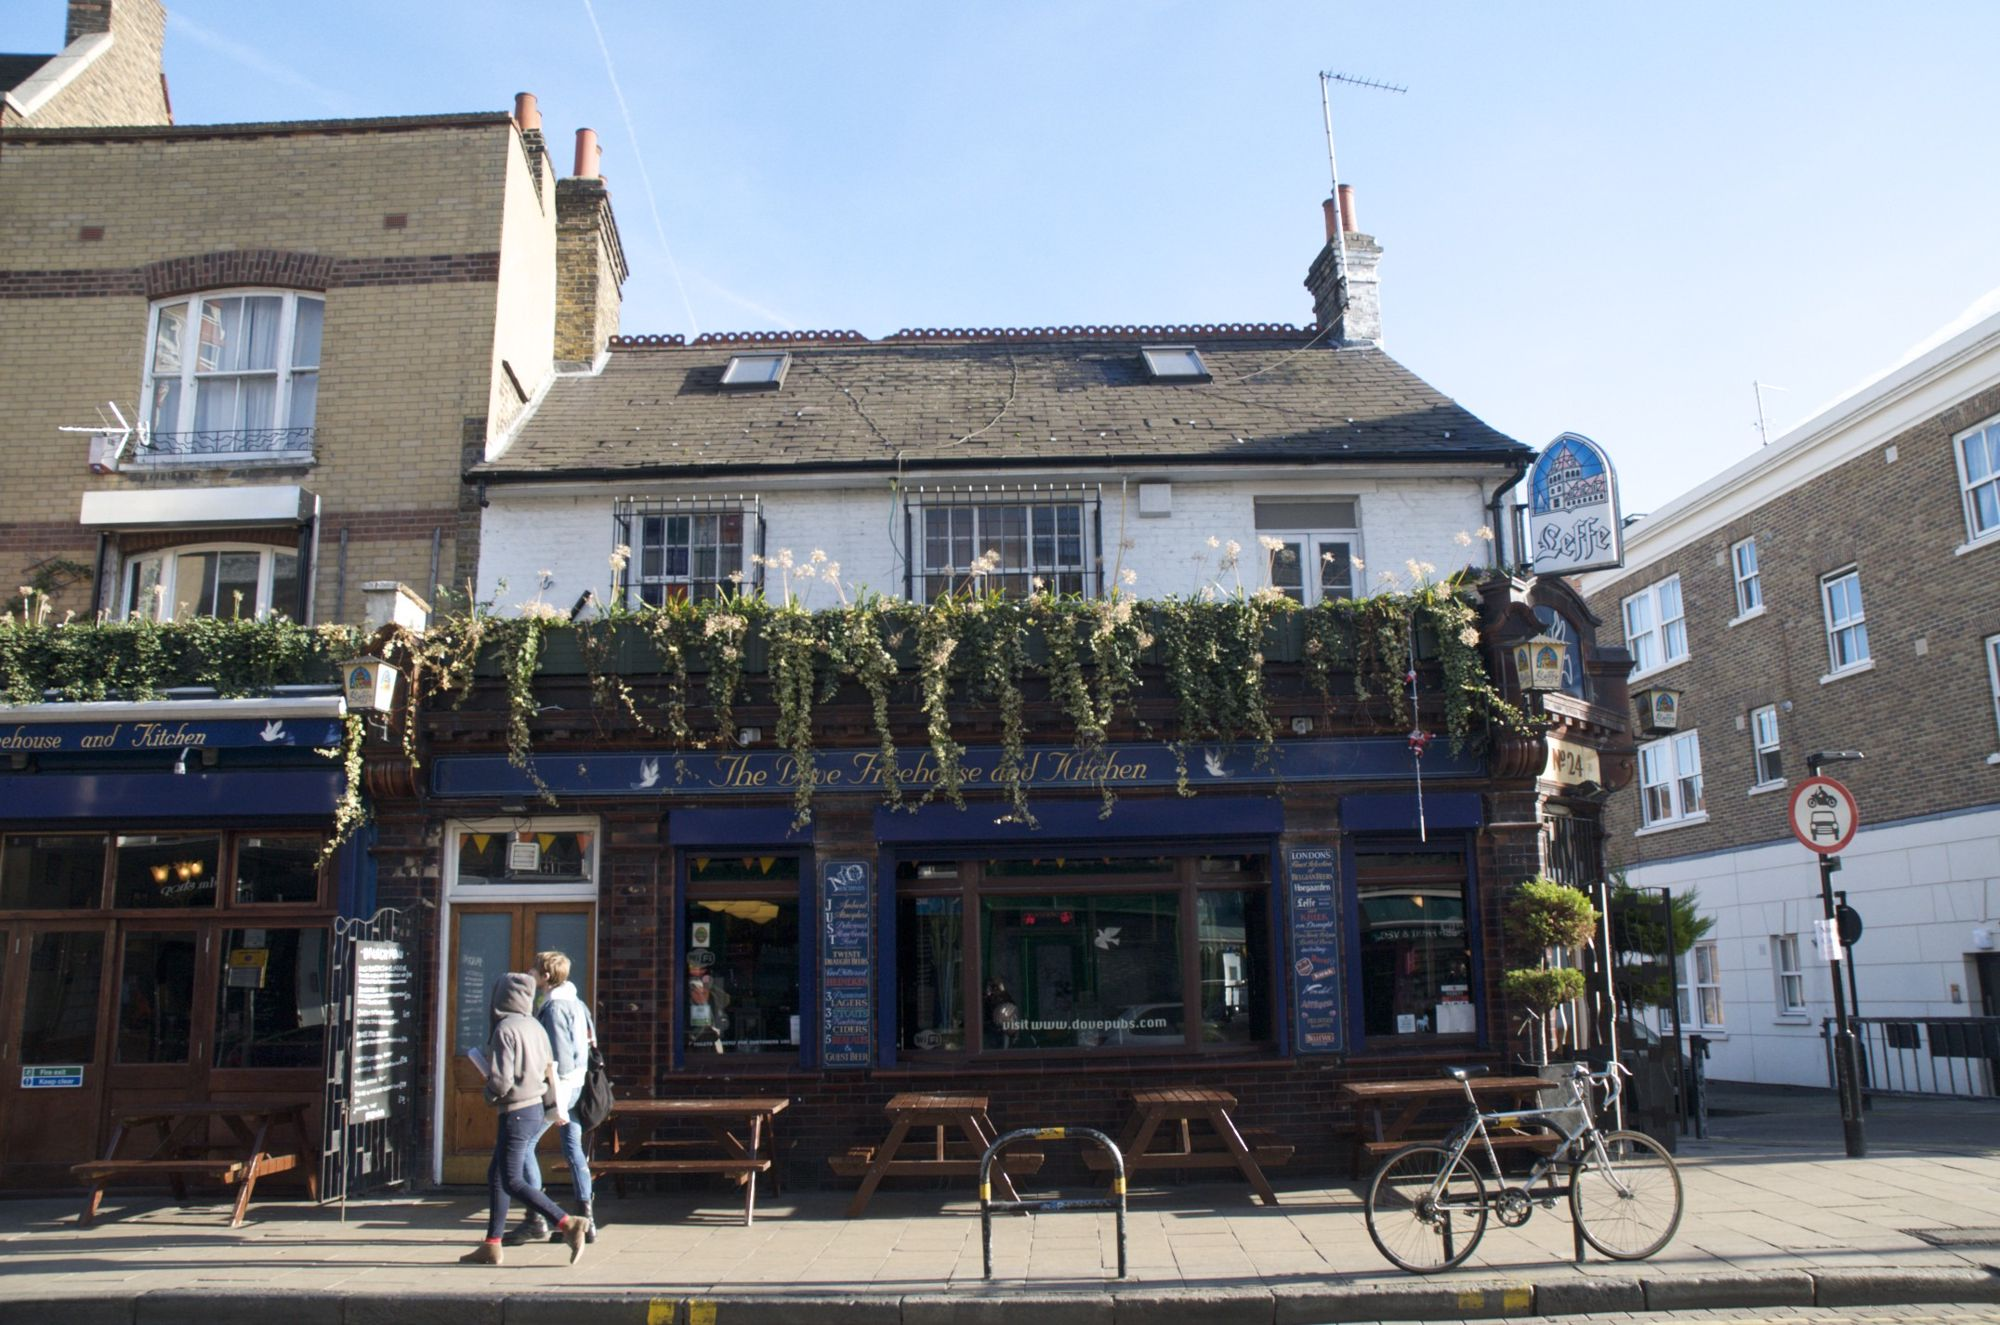 Hotels, B&Bs & Self-Catering in Hackney London - Cool Places to Stay in the UK